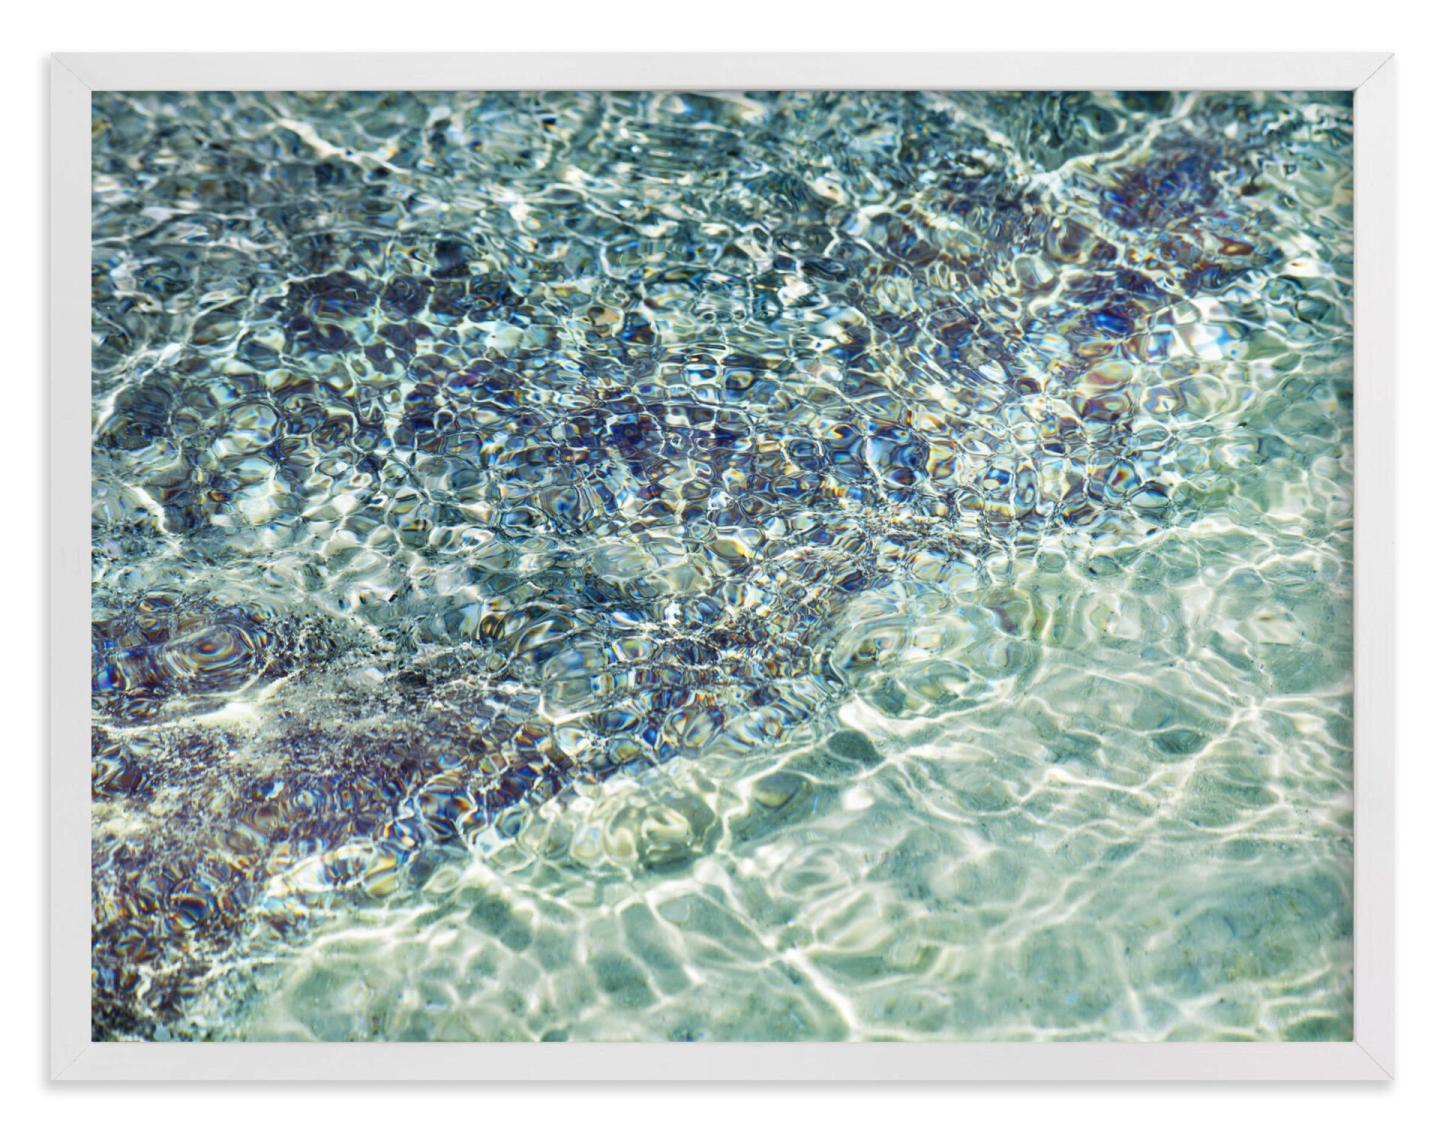 water photography for sale